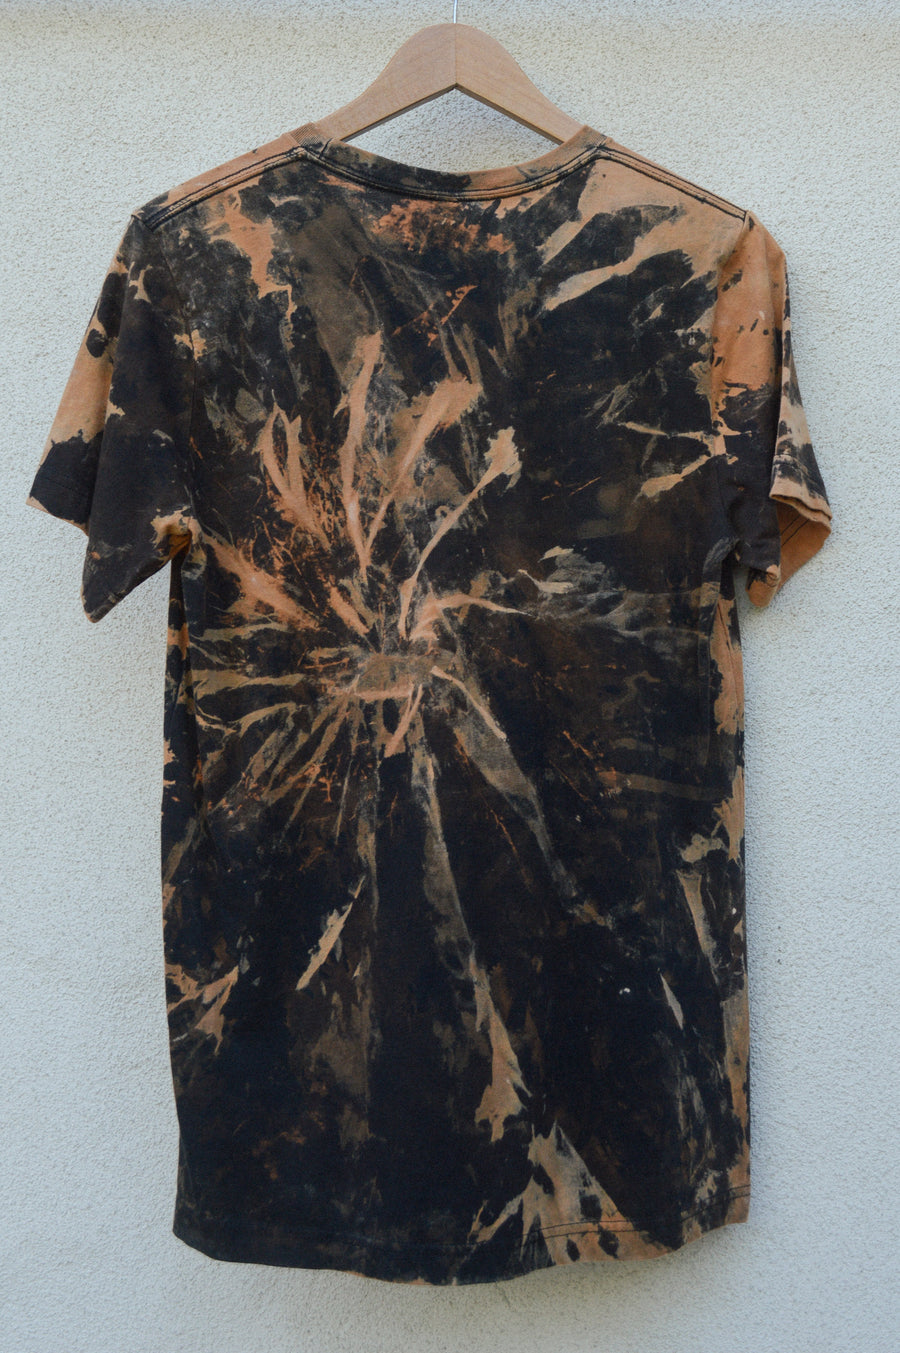 Bleach Dyed Line Art TShirt || gift for him, tie dye, tye dye, eco friendly, sustainable, aesthetic clothing, line art drawing, abstract art